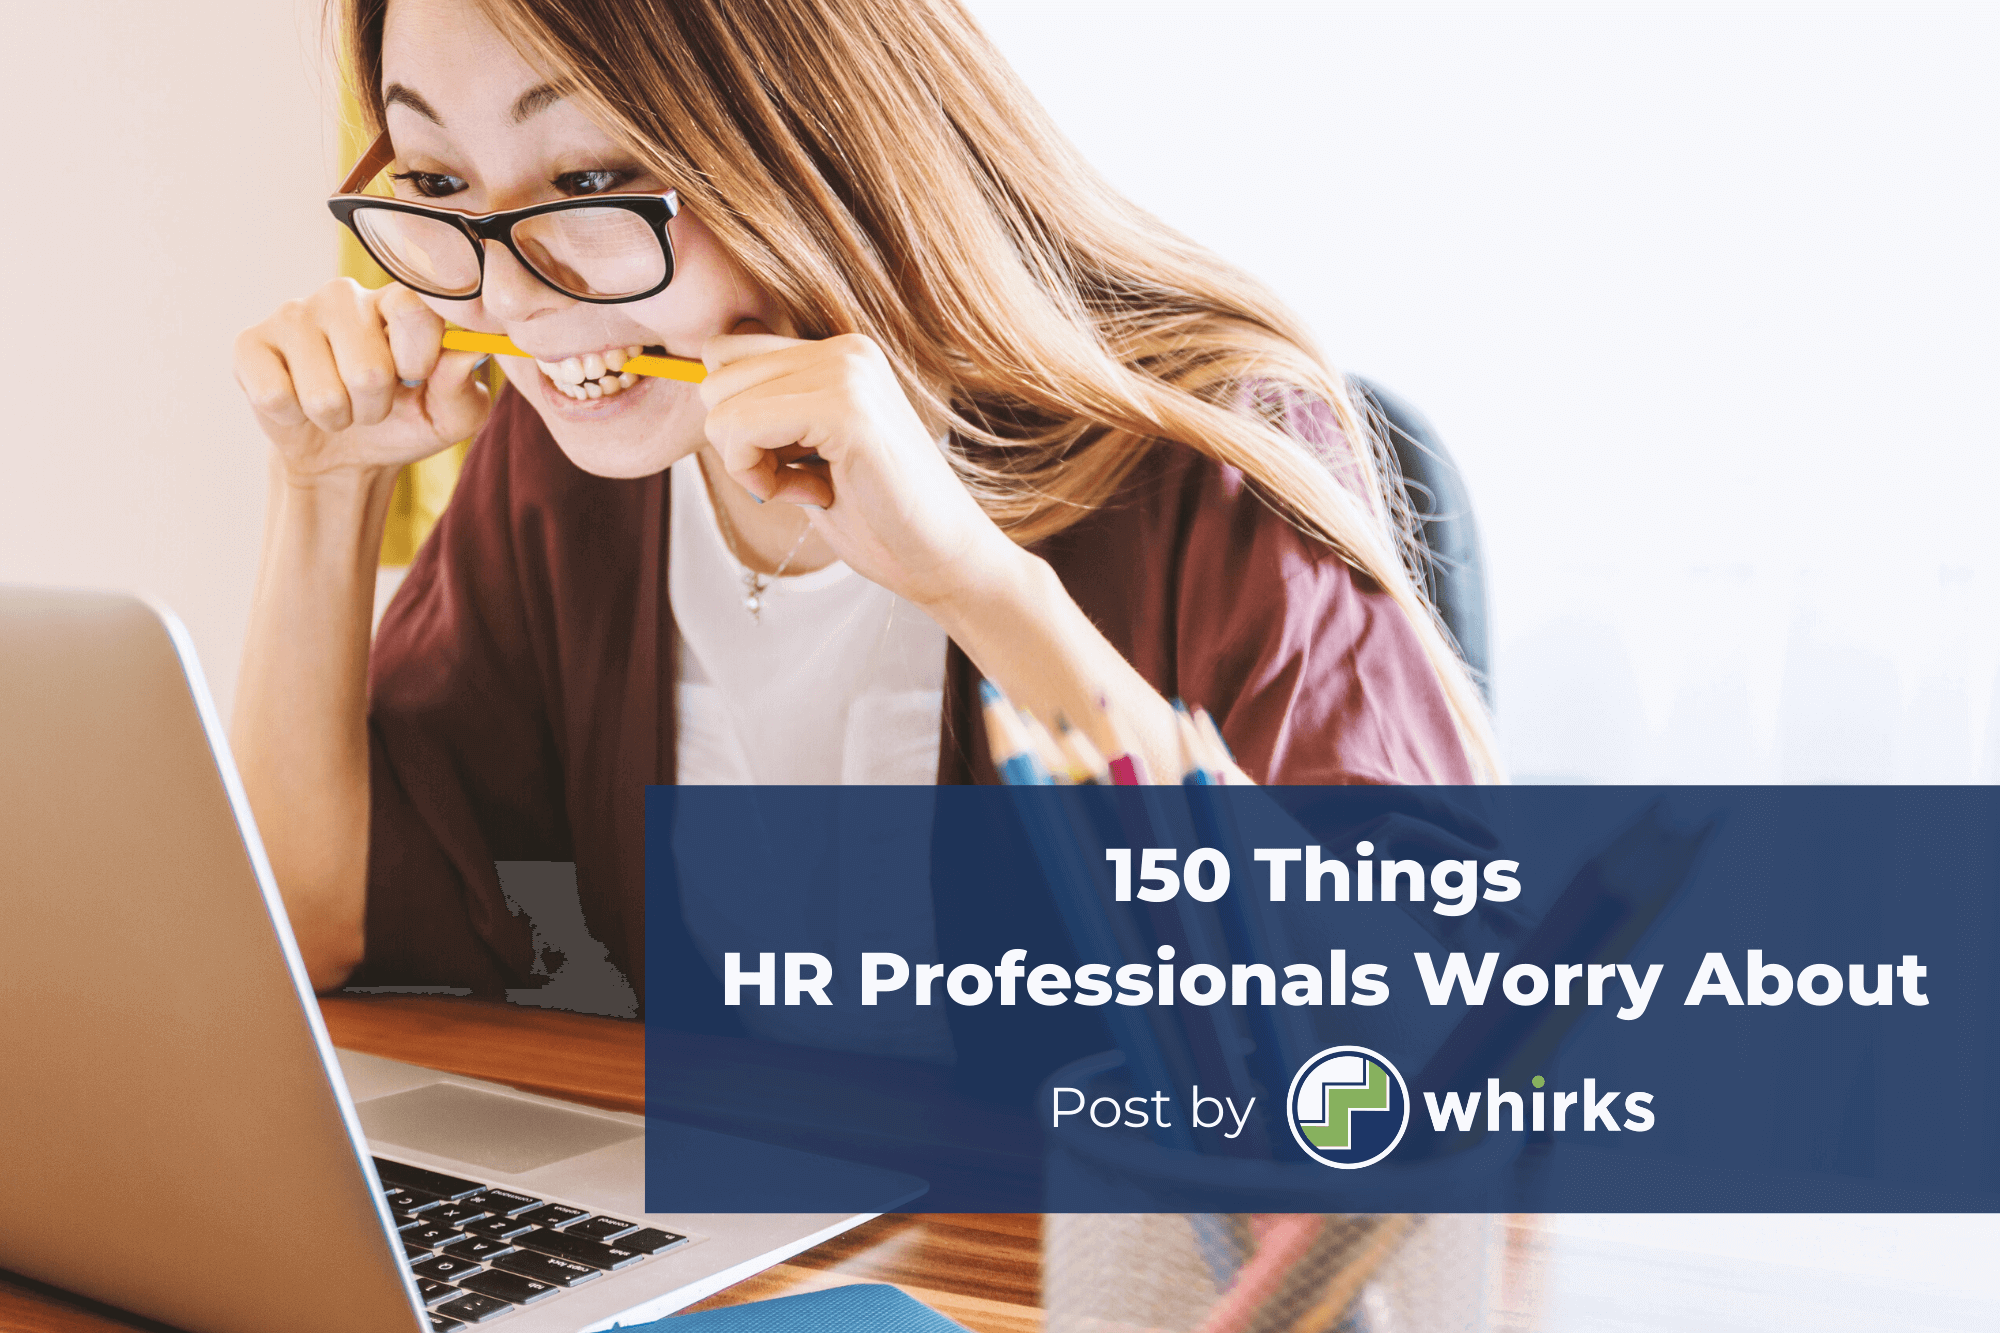 150 things HR professionals worry about